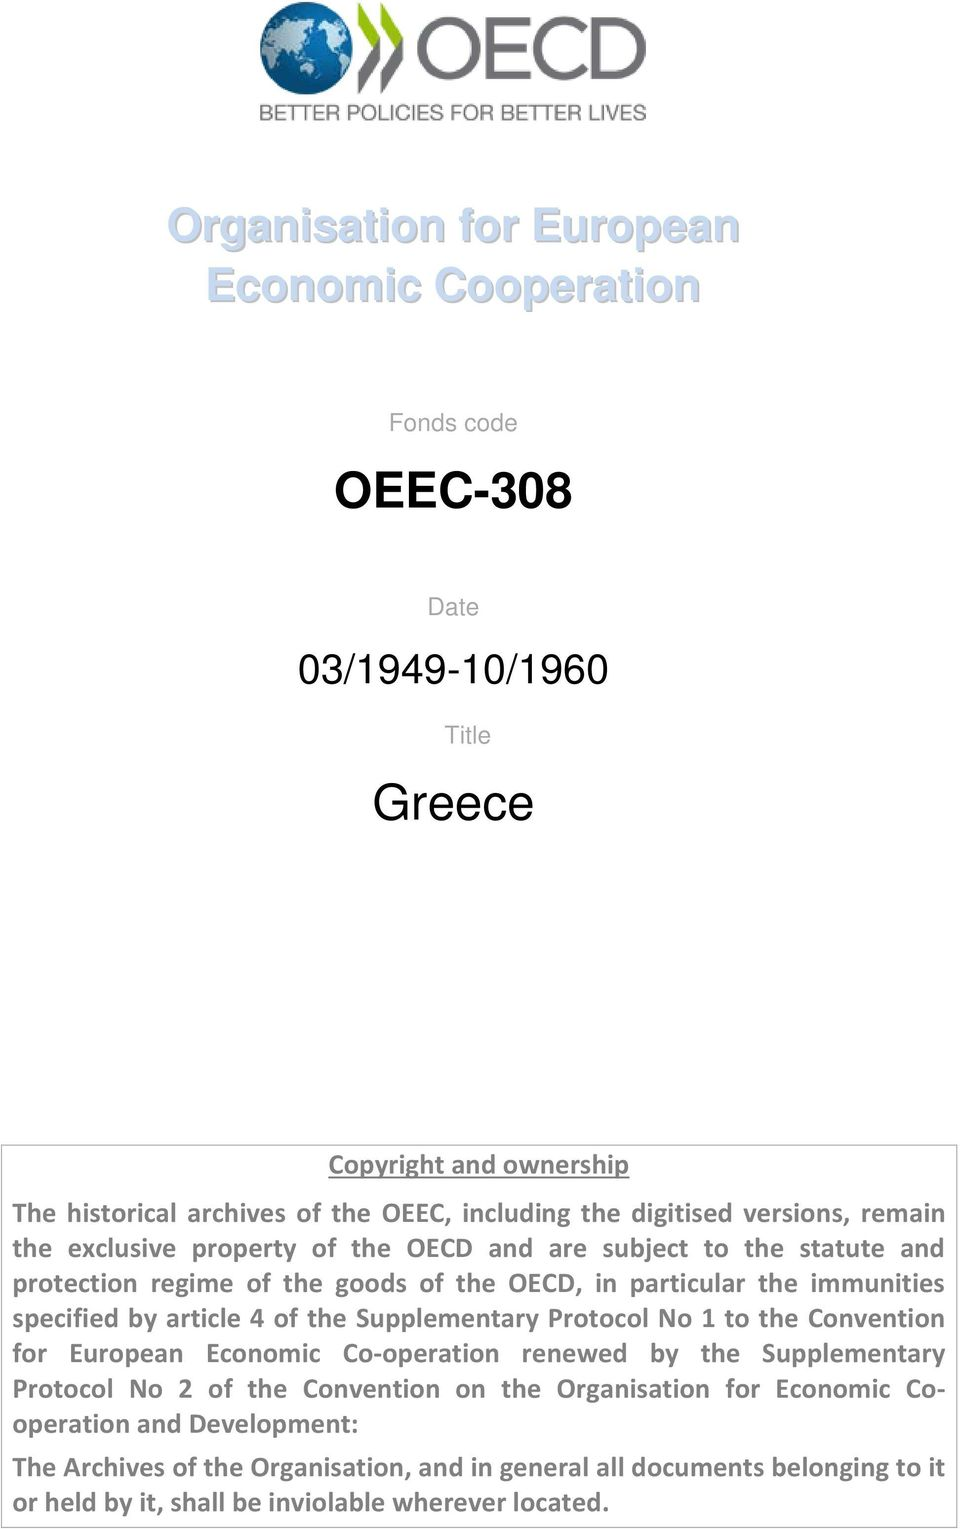 specified by article 4 of the Supplementary Protocol No 1 to the Convention for European Economic Co-operation renewed by the Supplementary Protocol No 2 of the Convention on